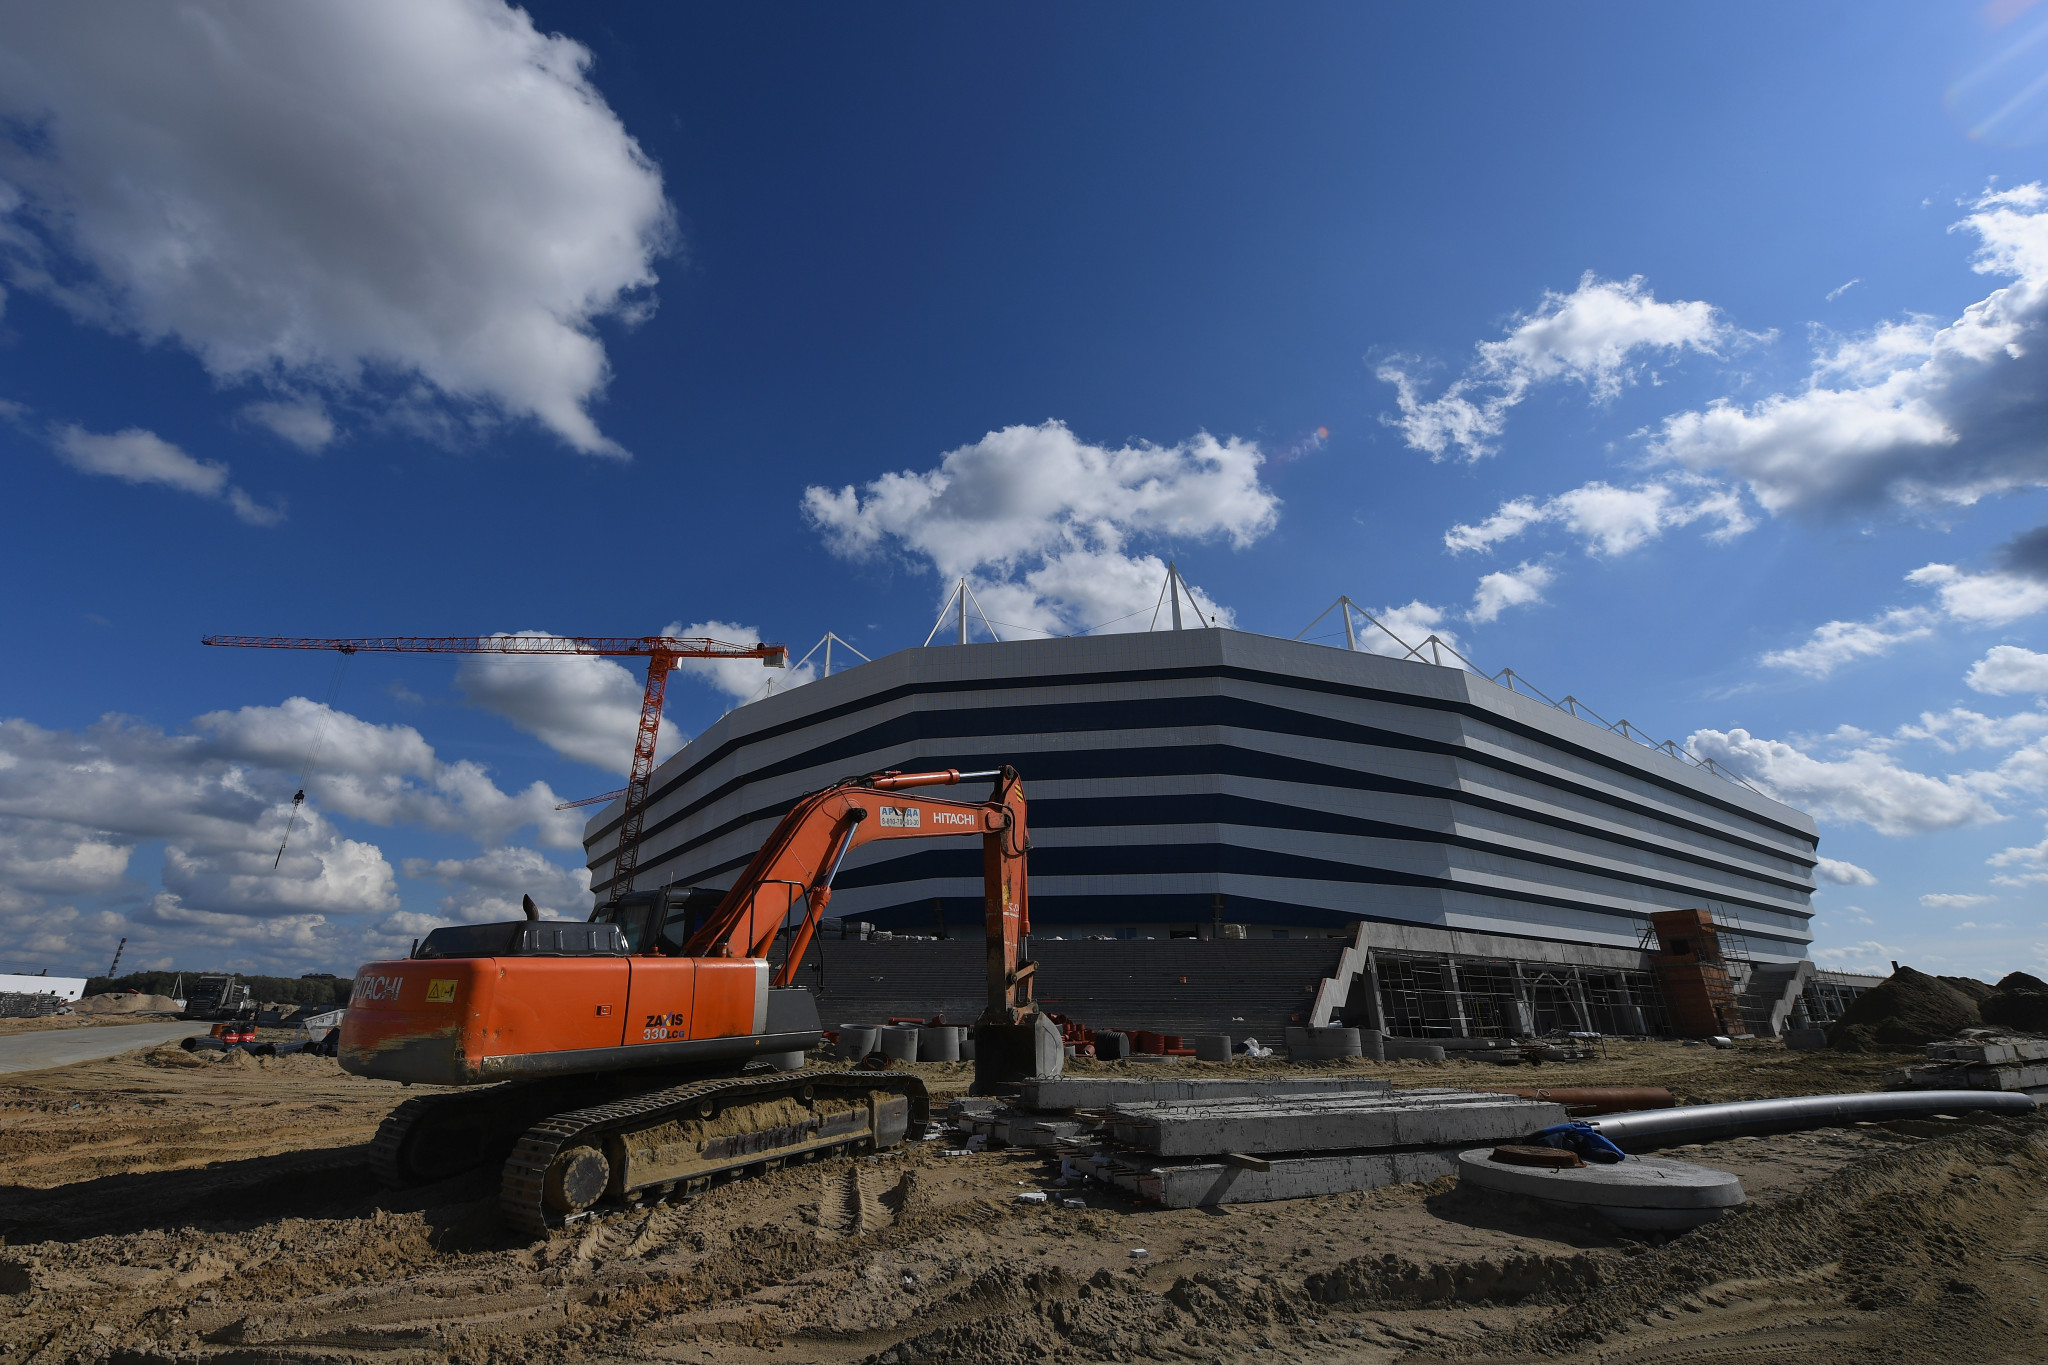 The World Cup stadium in Kaliningrad is still yet to be fully completed ©Getty Images